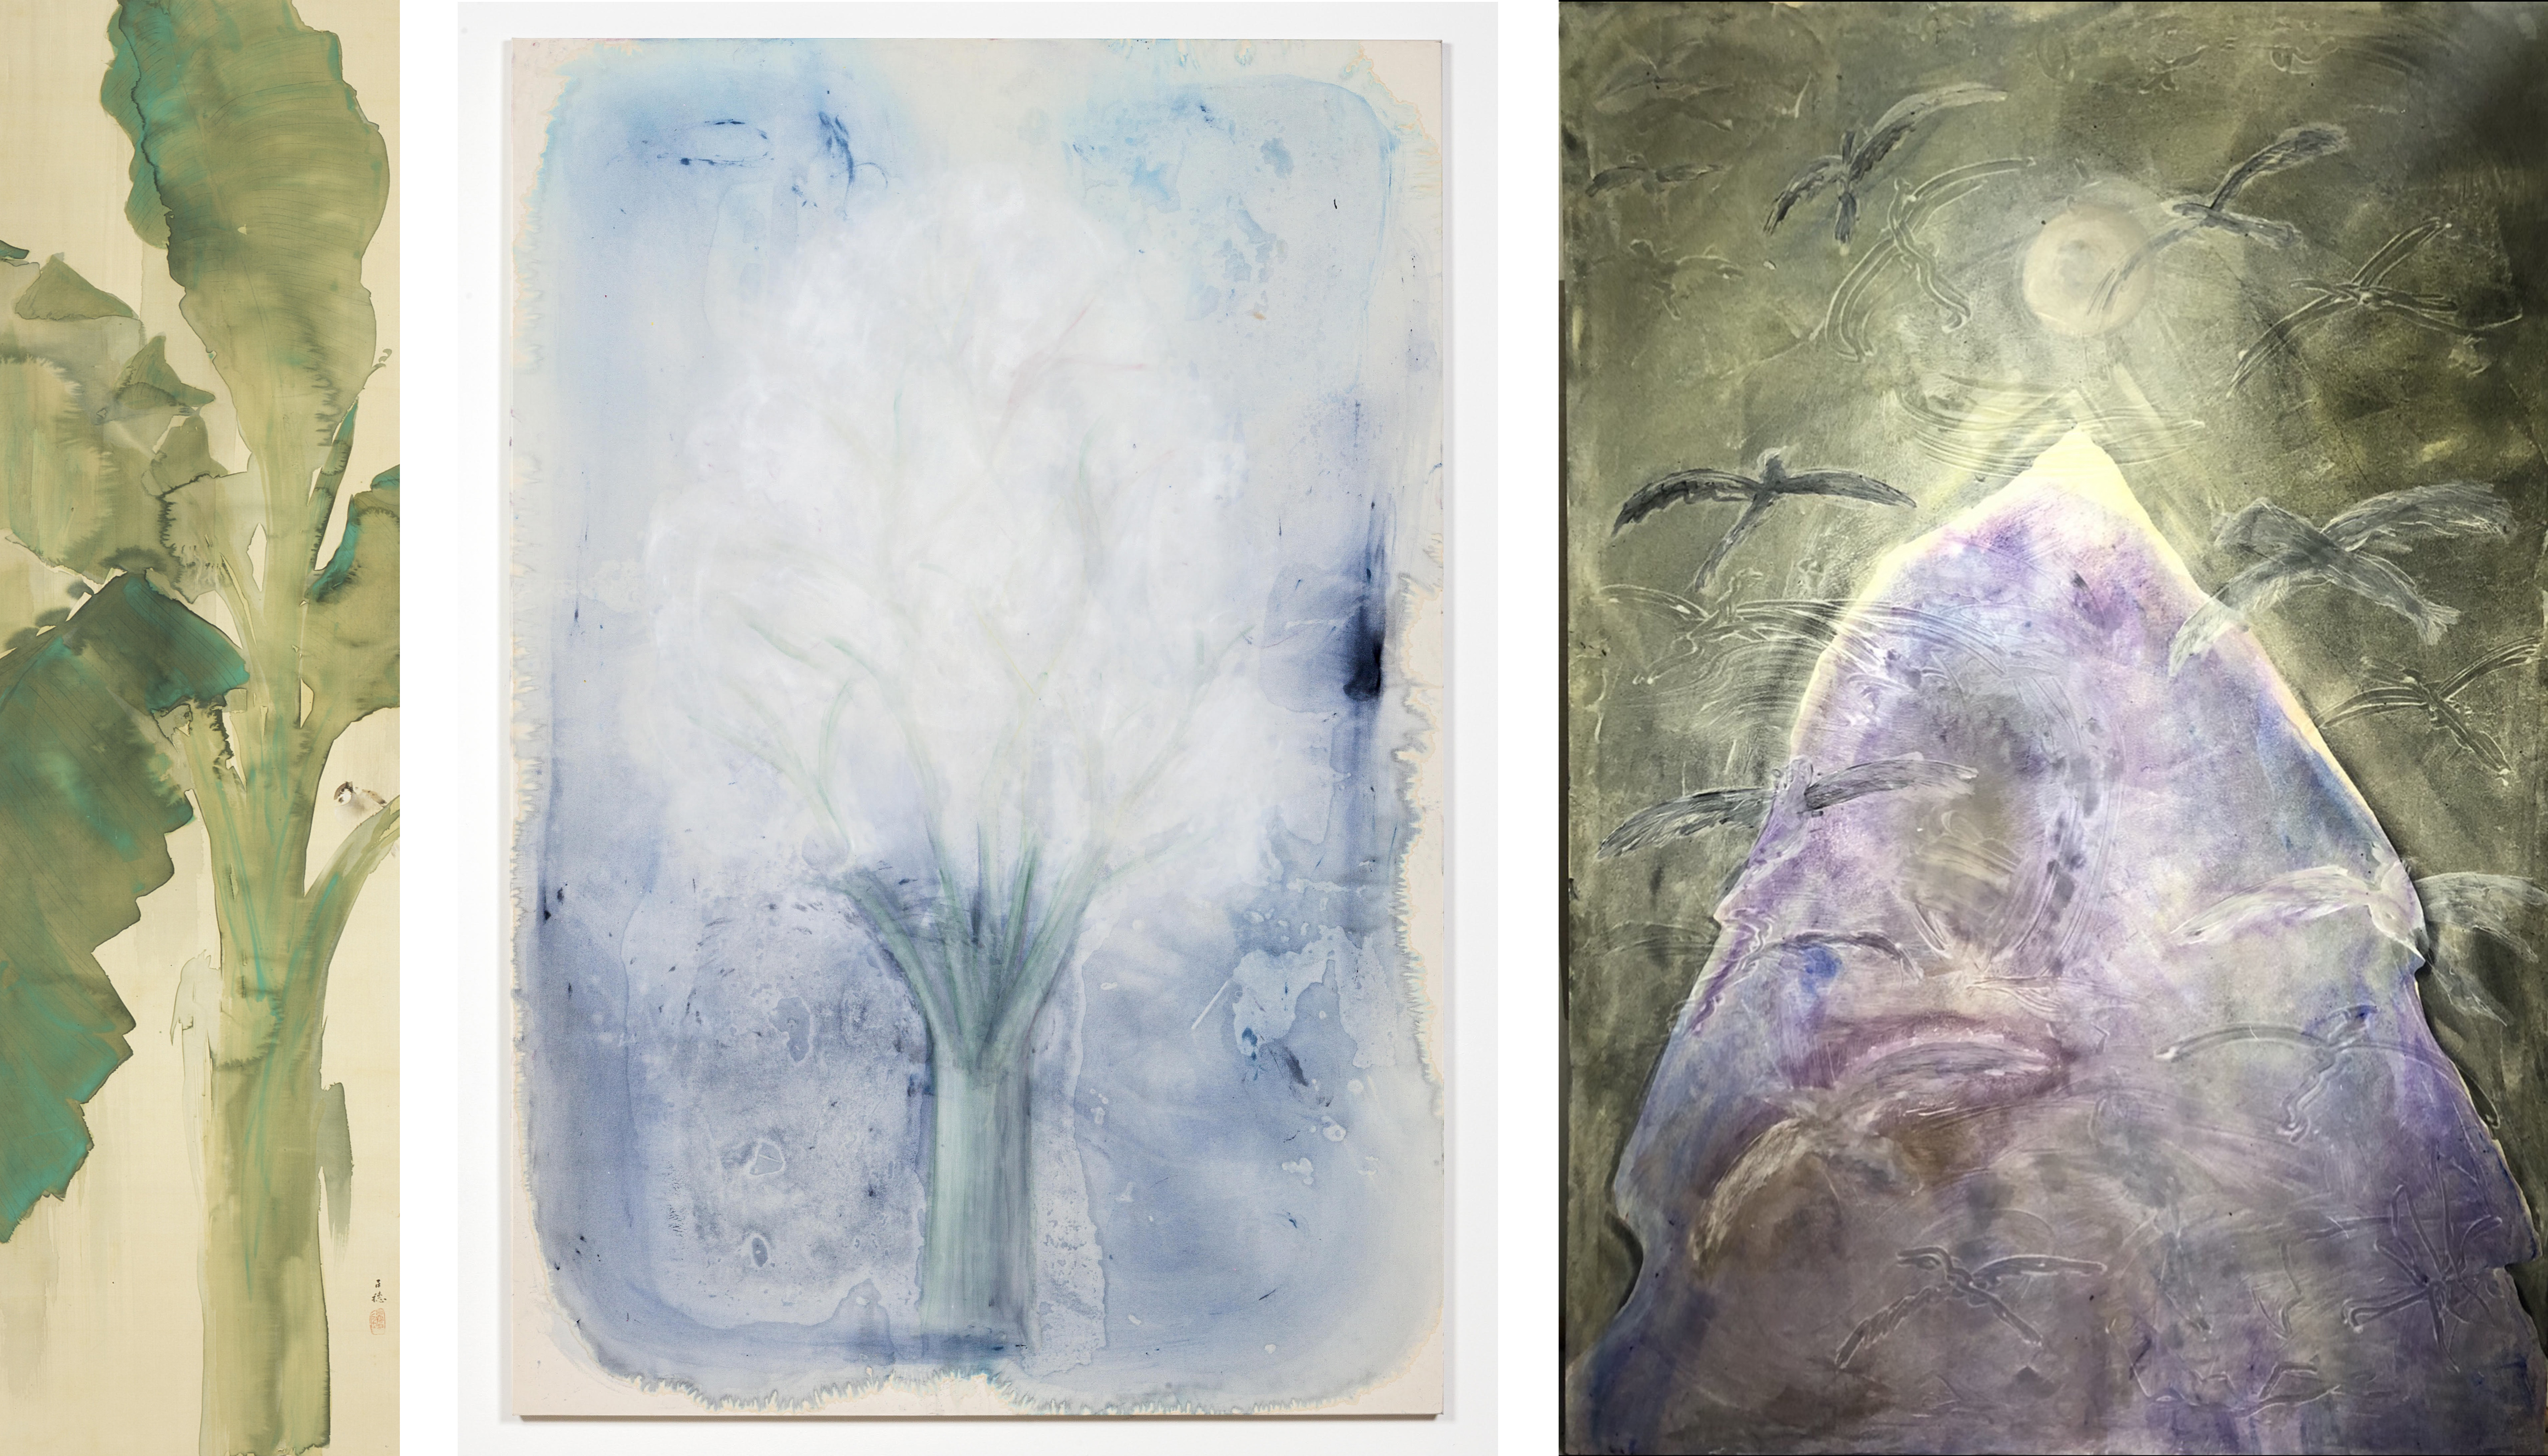 Left (LACMA selection): Hirafuku Hyakusui, Banana Tree in Rain, 20th century, Los Angeles County Museum of Art, Far Eastern Art Council Fund, photo © Museum Associates/LACMA; Center (Artist work): Tara Walters, Lone Tree, 2020, photo by David Daigle; Right (Artist work): Tara Walters, Vanquish, 2020, photo courtesy of the artist